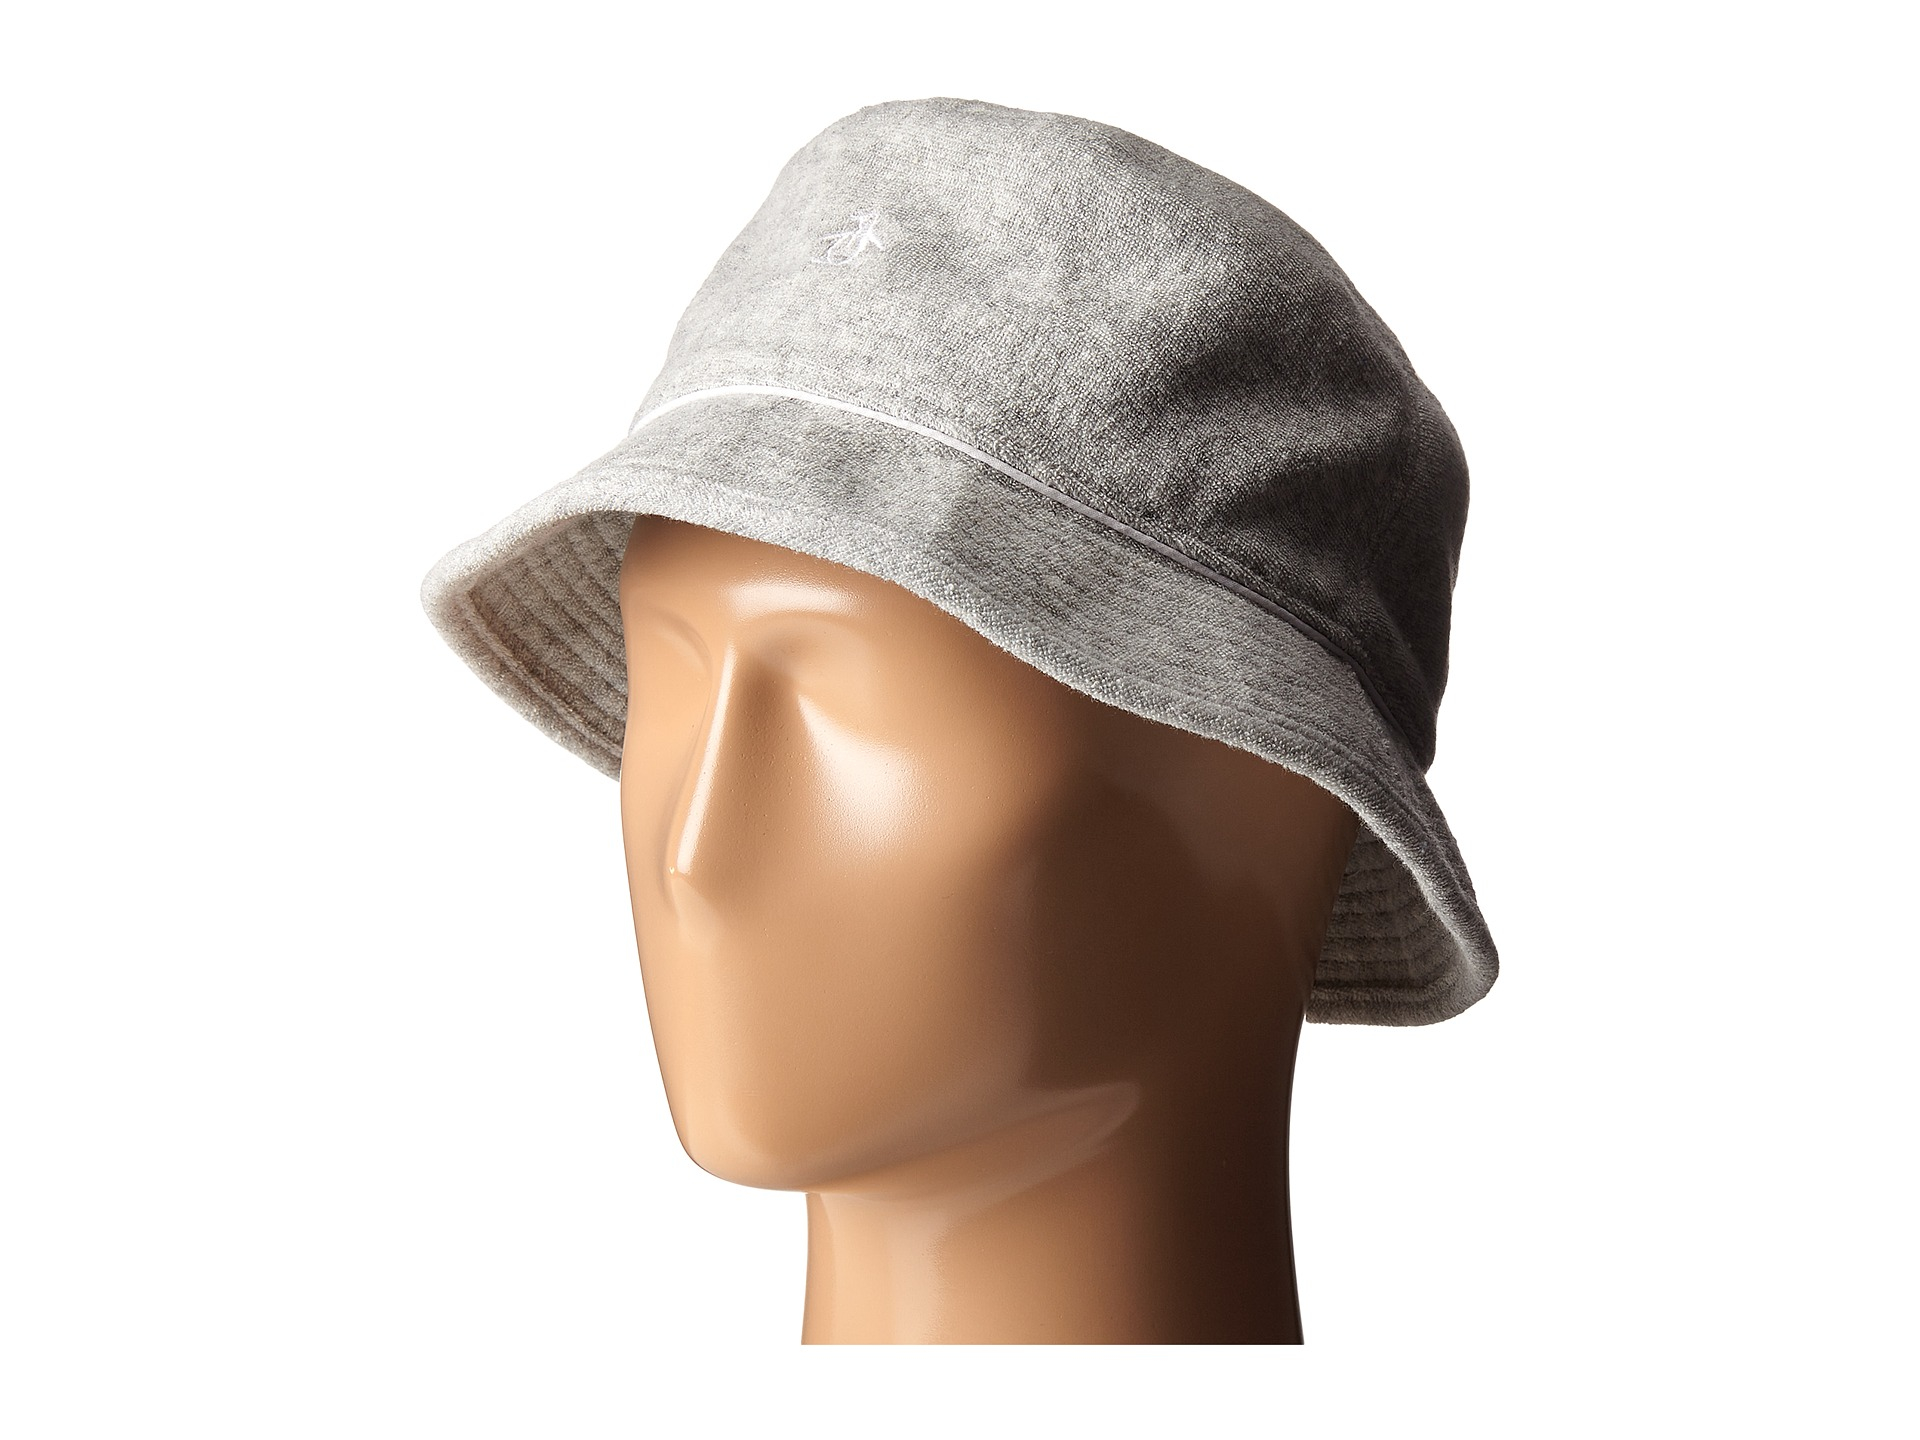 Lyst - Original Penguin Terry Cloth Bucket Hat in Gray for Men d5f5adccb